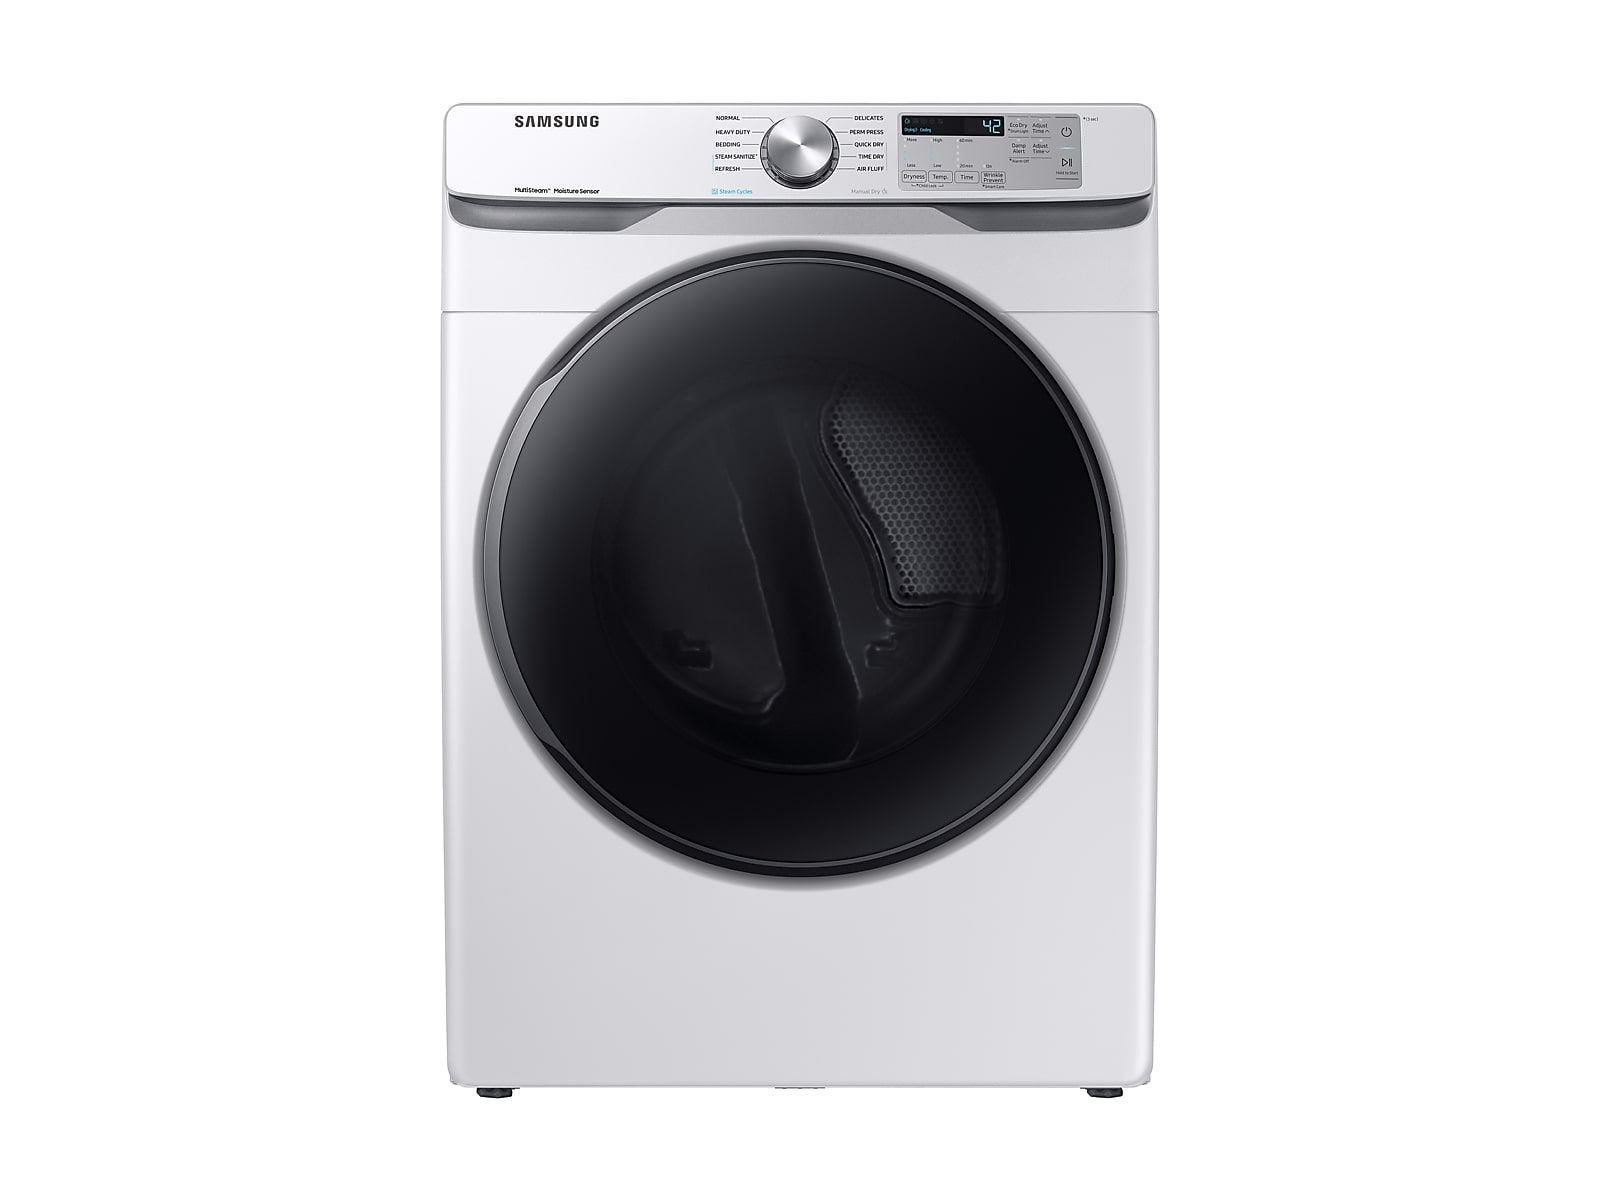 Samsung coupon: Samsung 7.5 cu. ft. Electric Dryer with Steam Sanitize+ in White(DVE45R6100W/A3)